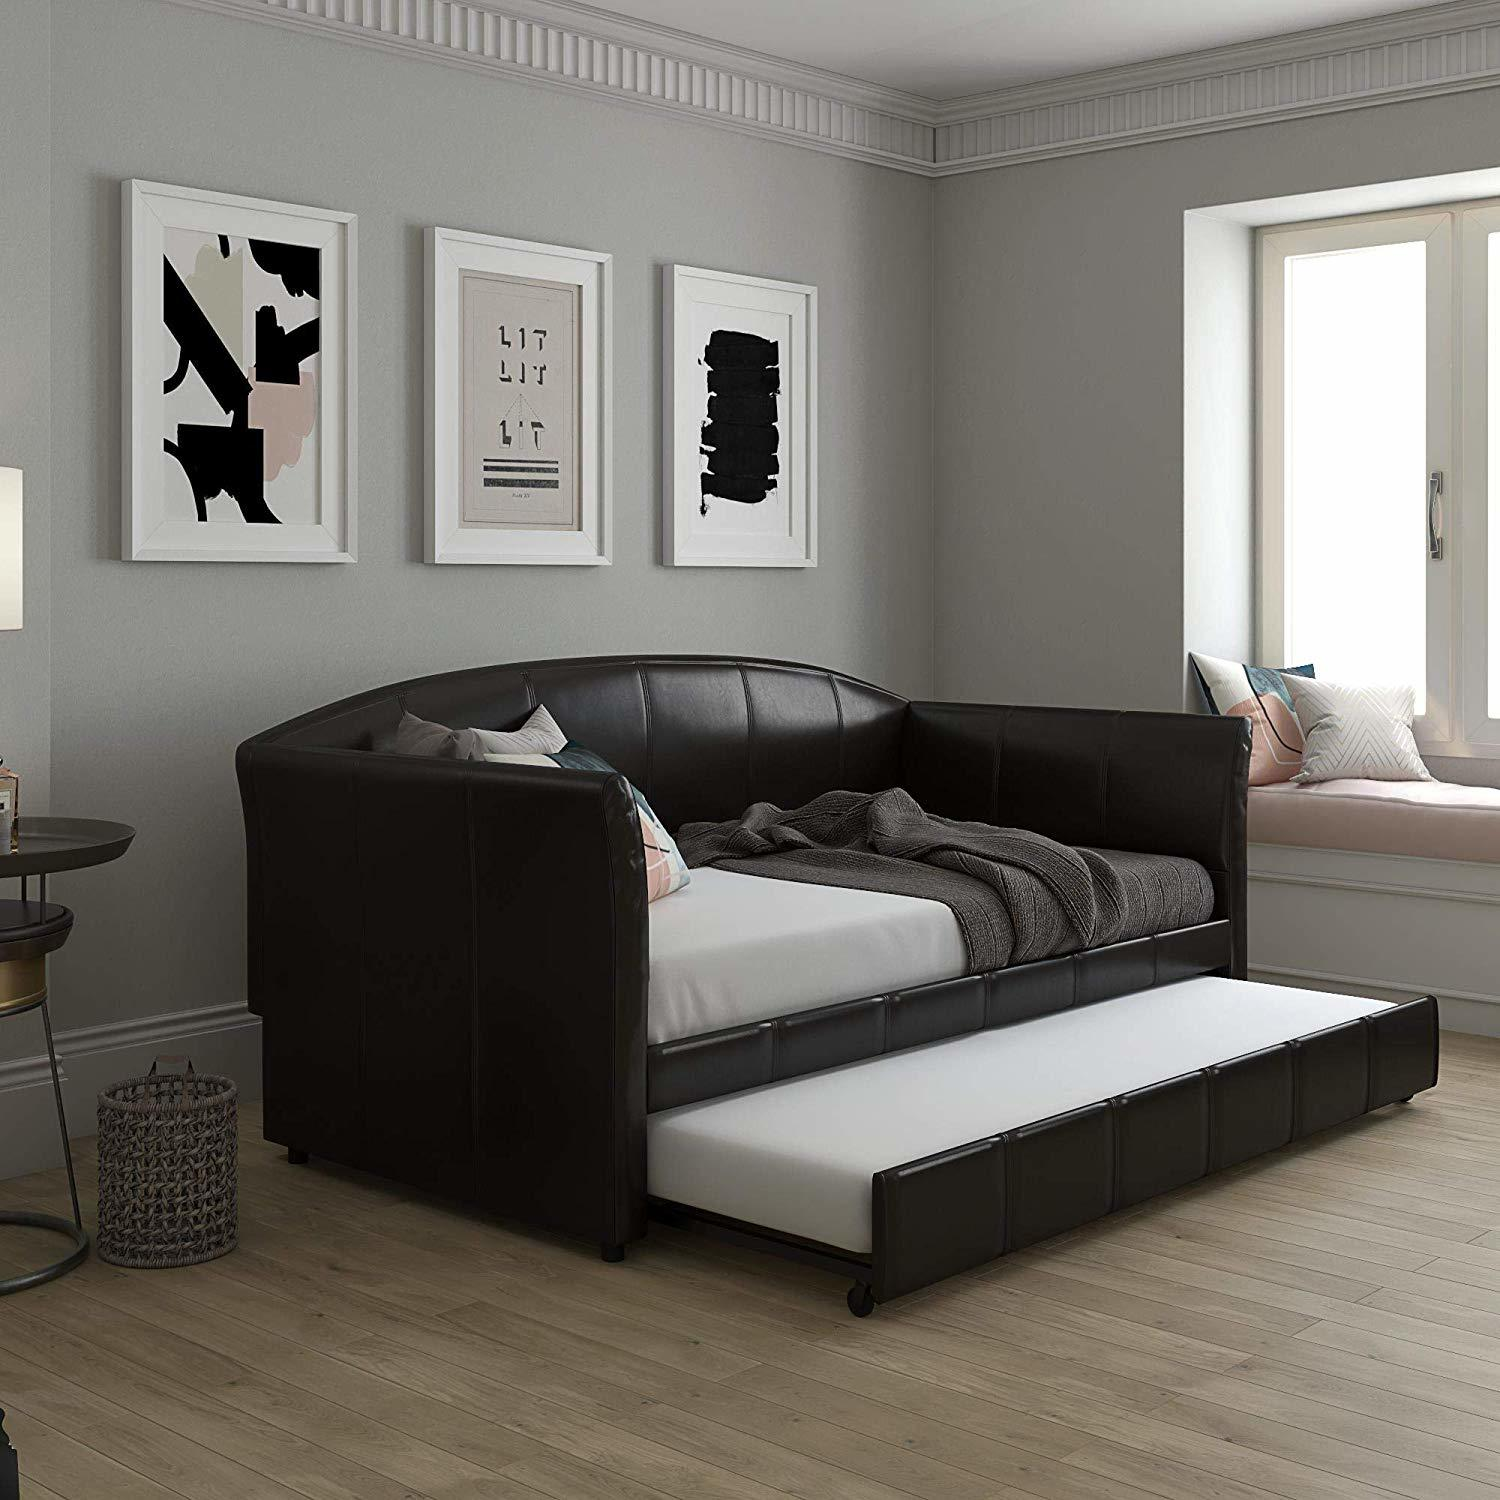 Best Pull Out Sofa Bed In 2019 The 10 Most Comfortable Couch